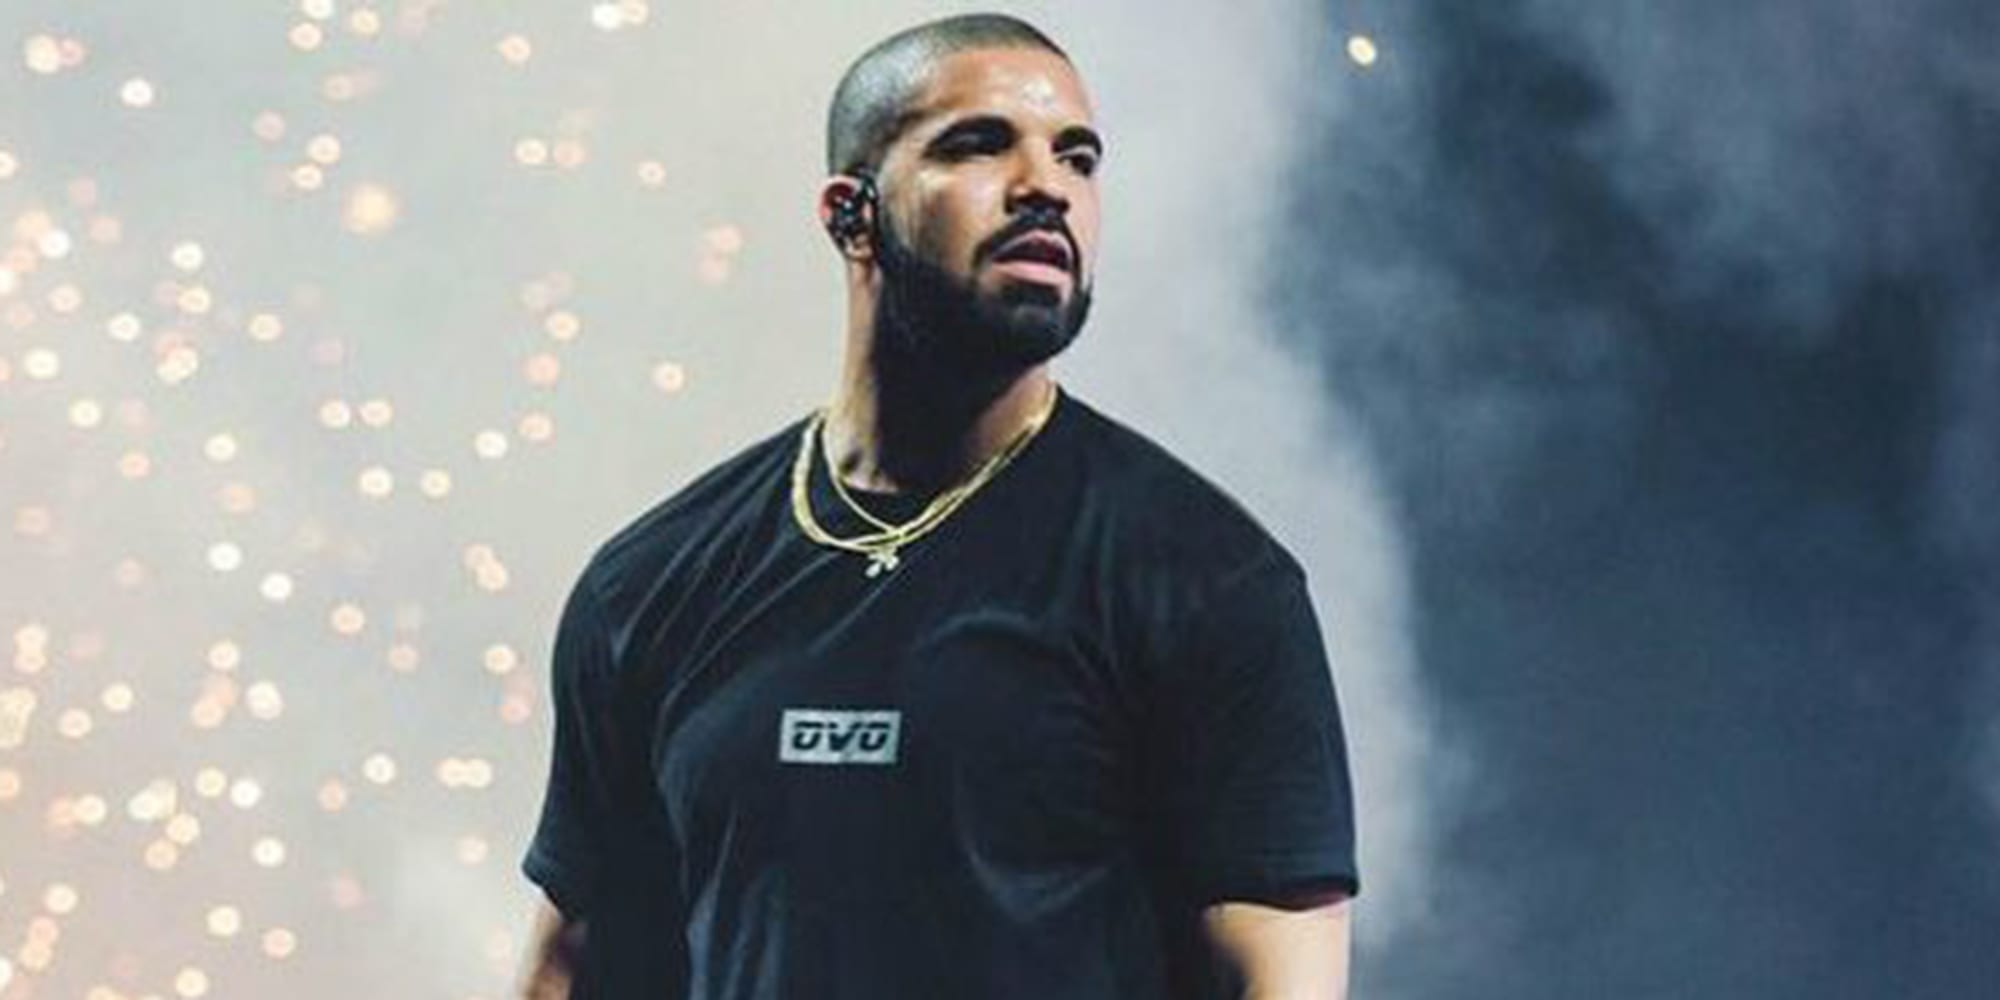 When Is Drake On Tour In The Uk